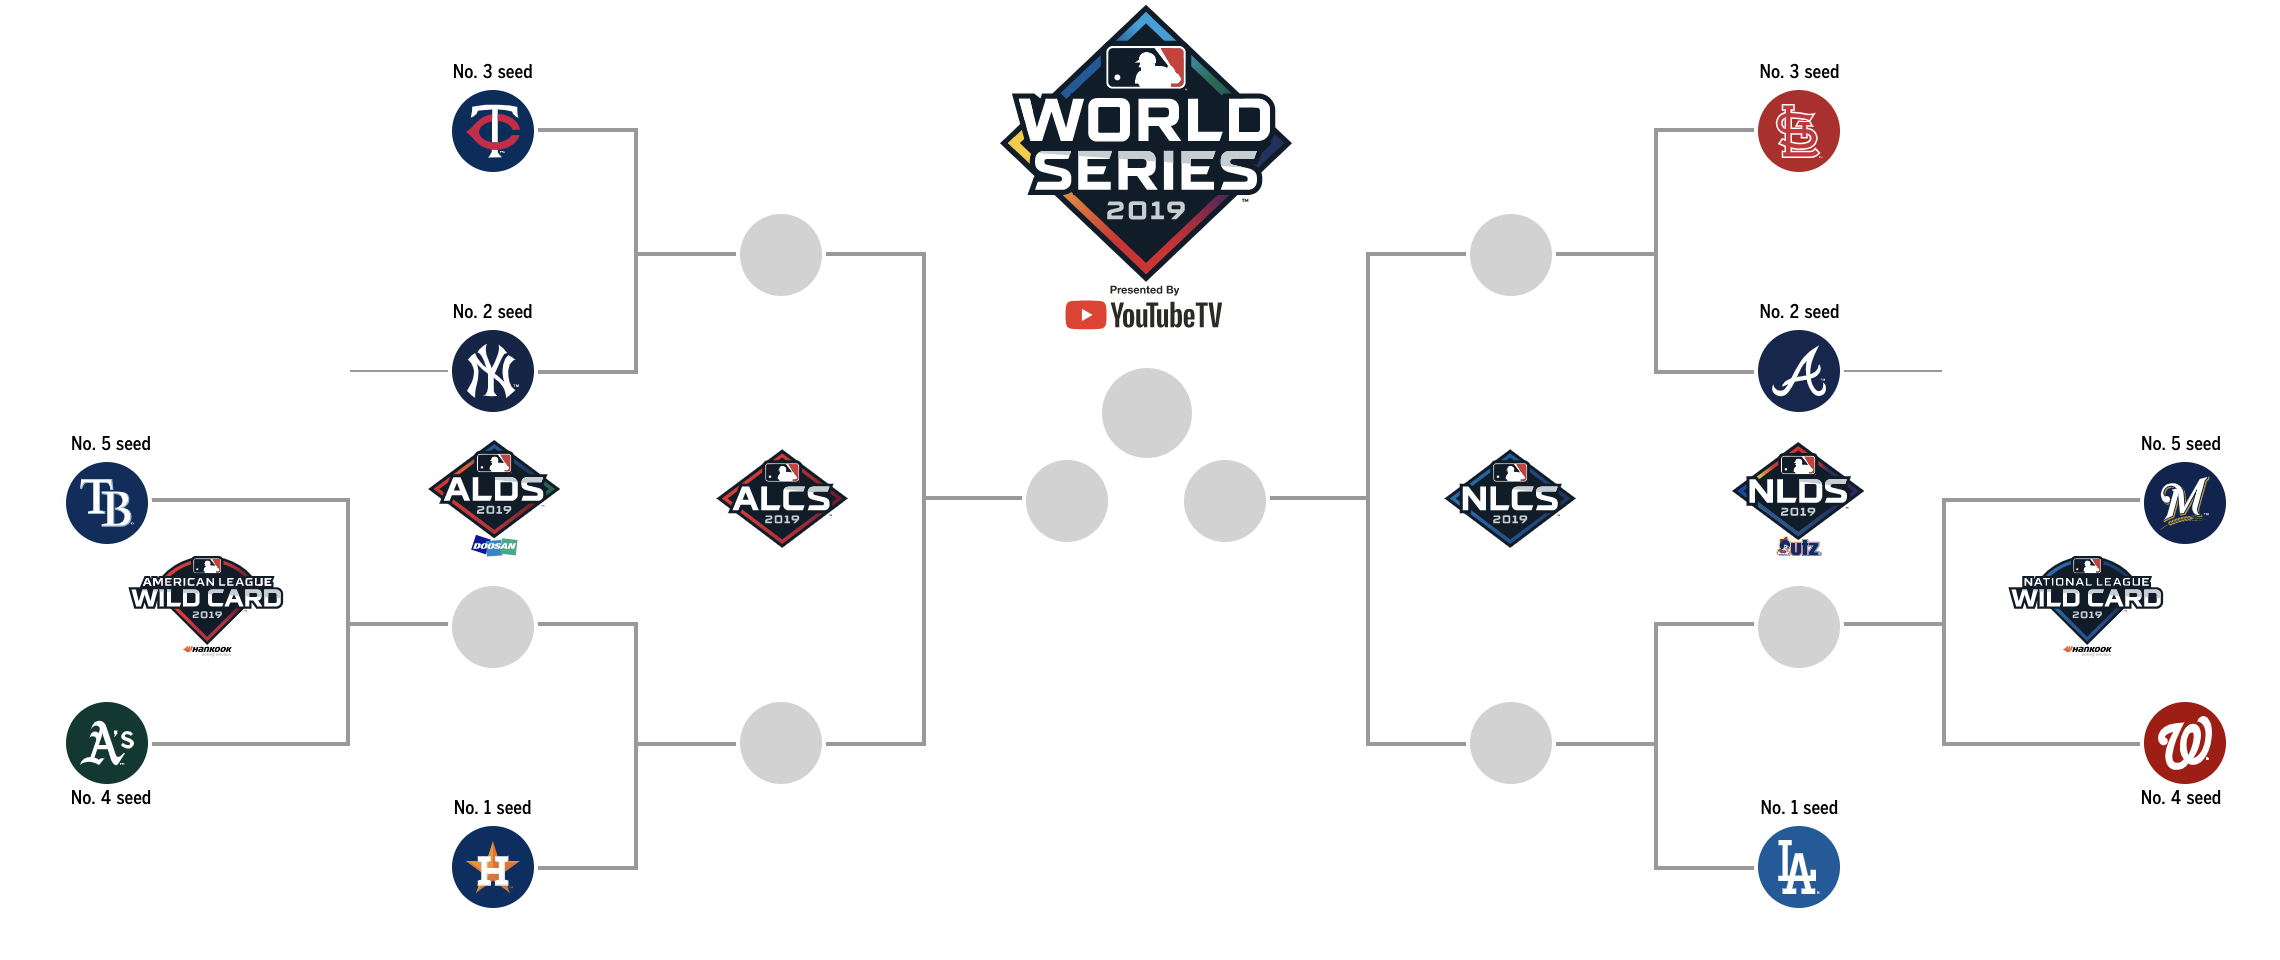 Mlb Playoff Schedule Matchups Game Times Where To Watch